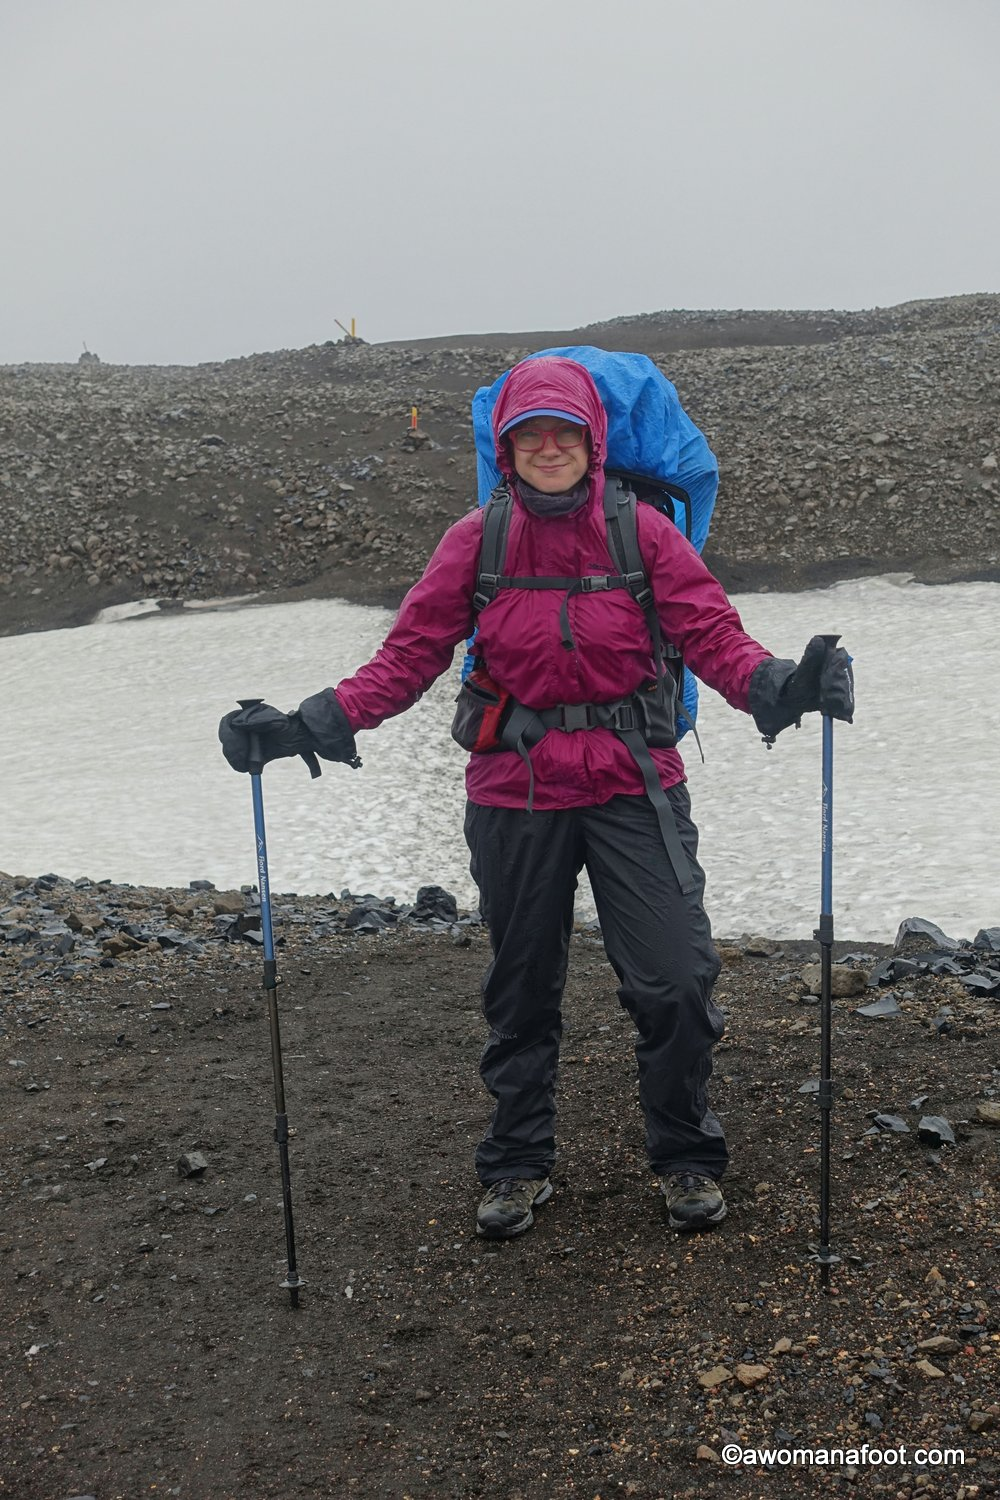 Marmot PreCip rain jacket - during a hike in Iceland. Paired with Marmot PreCip rain pants - the perfect combo for  Icelandic summer !